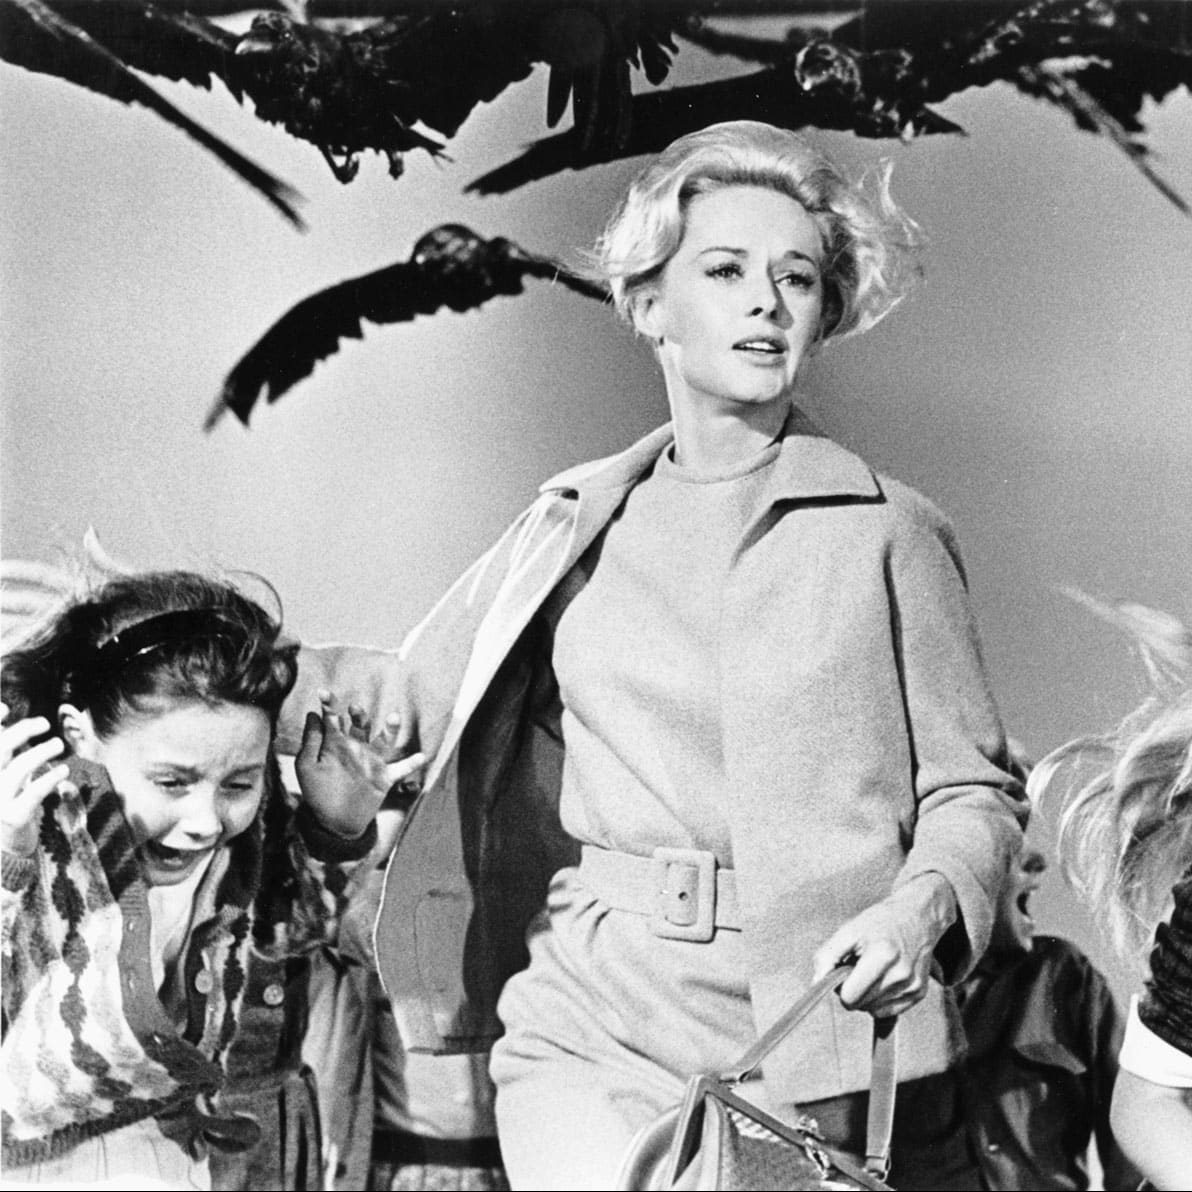 Tippi Hedren The Birds Alfred Hitchcock e1572603187613 These 20 Creepy Facts About Disney's Arachnophobia Definitely Have Legs